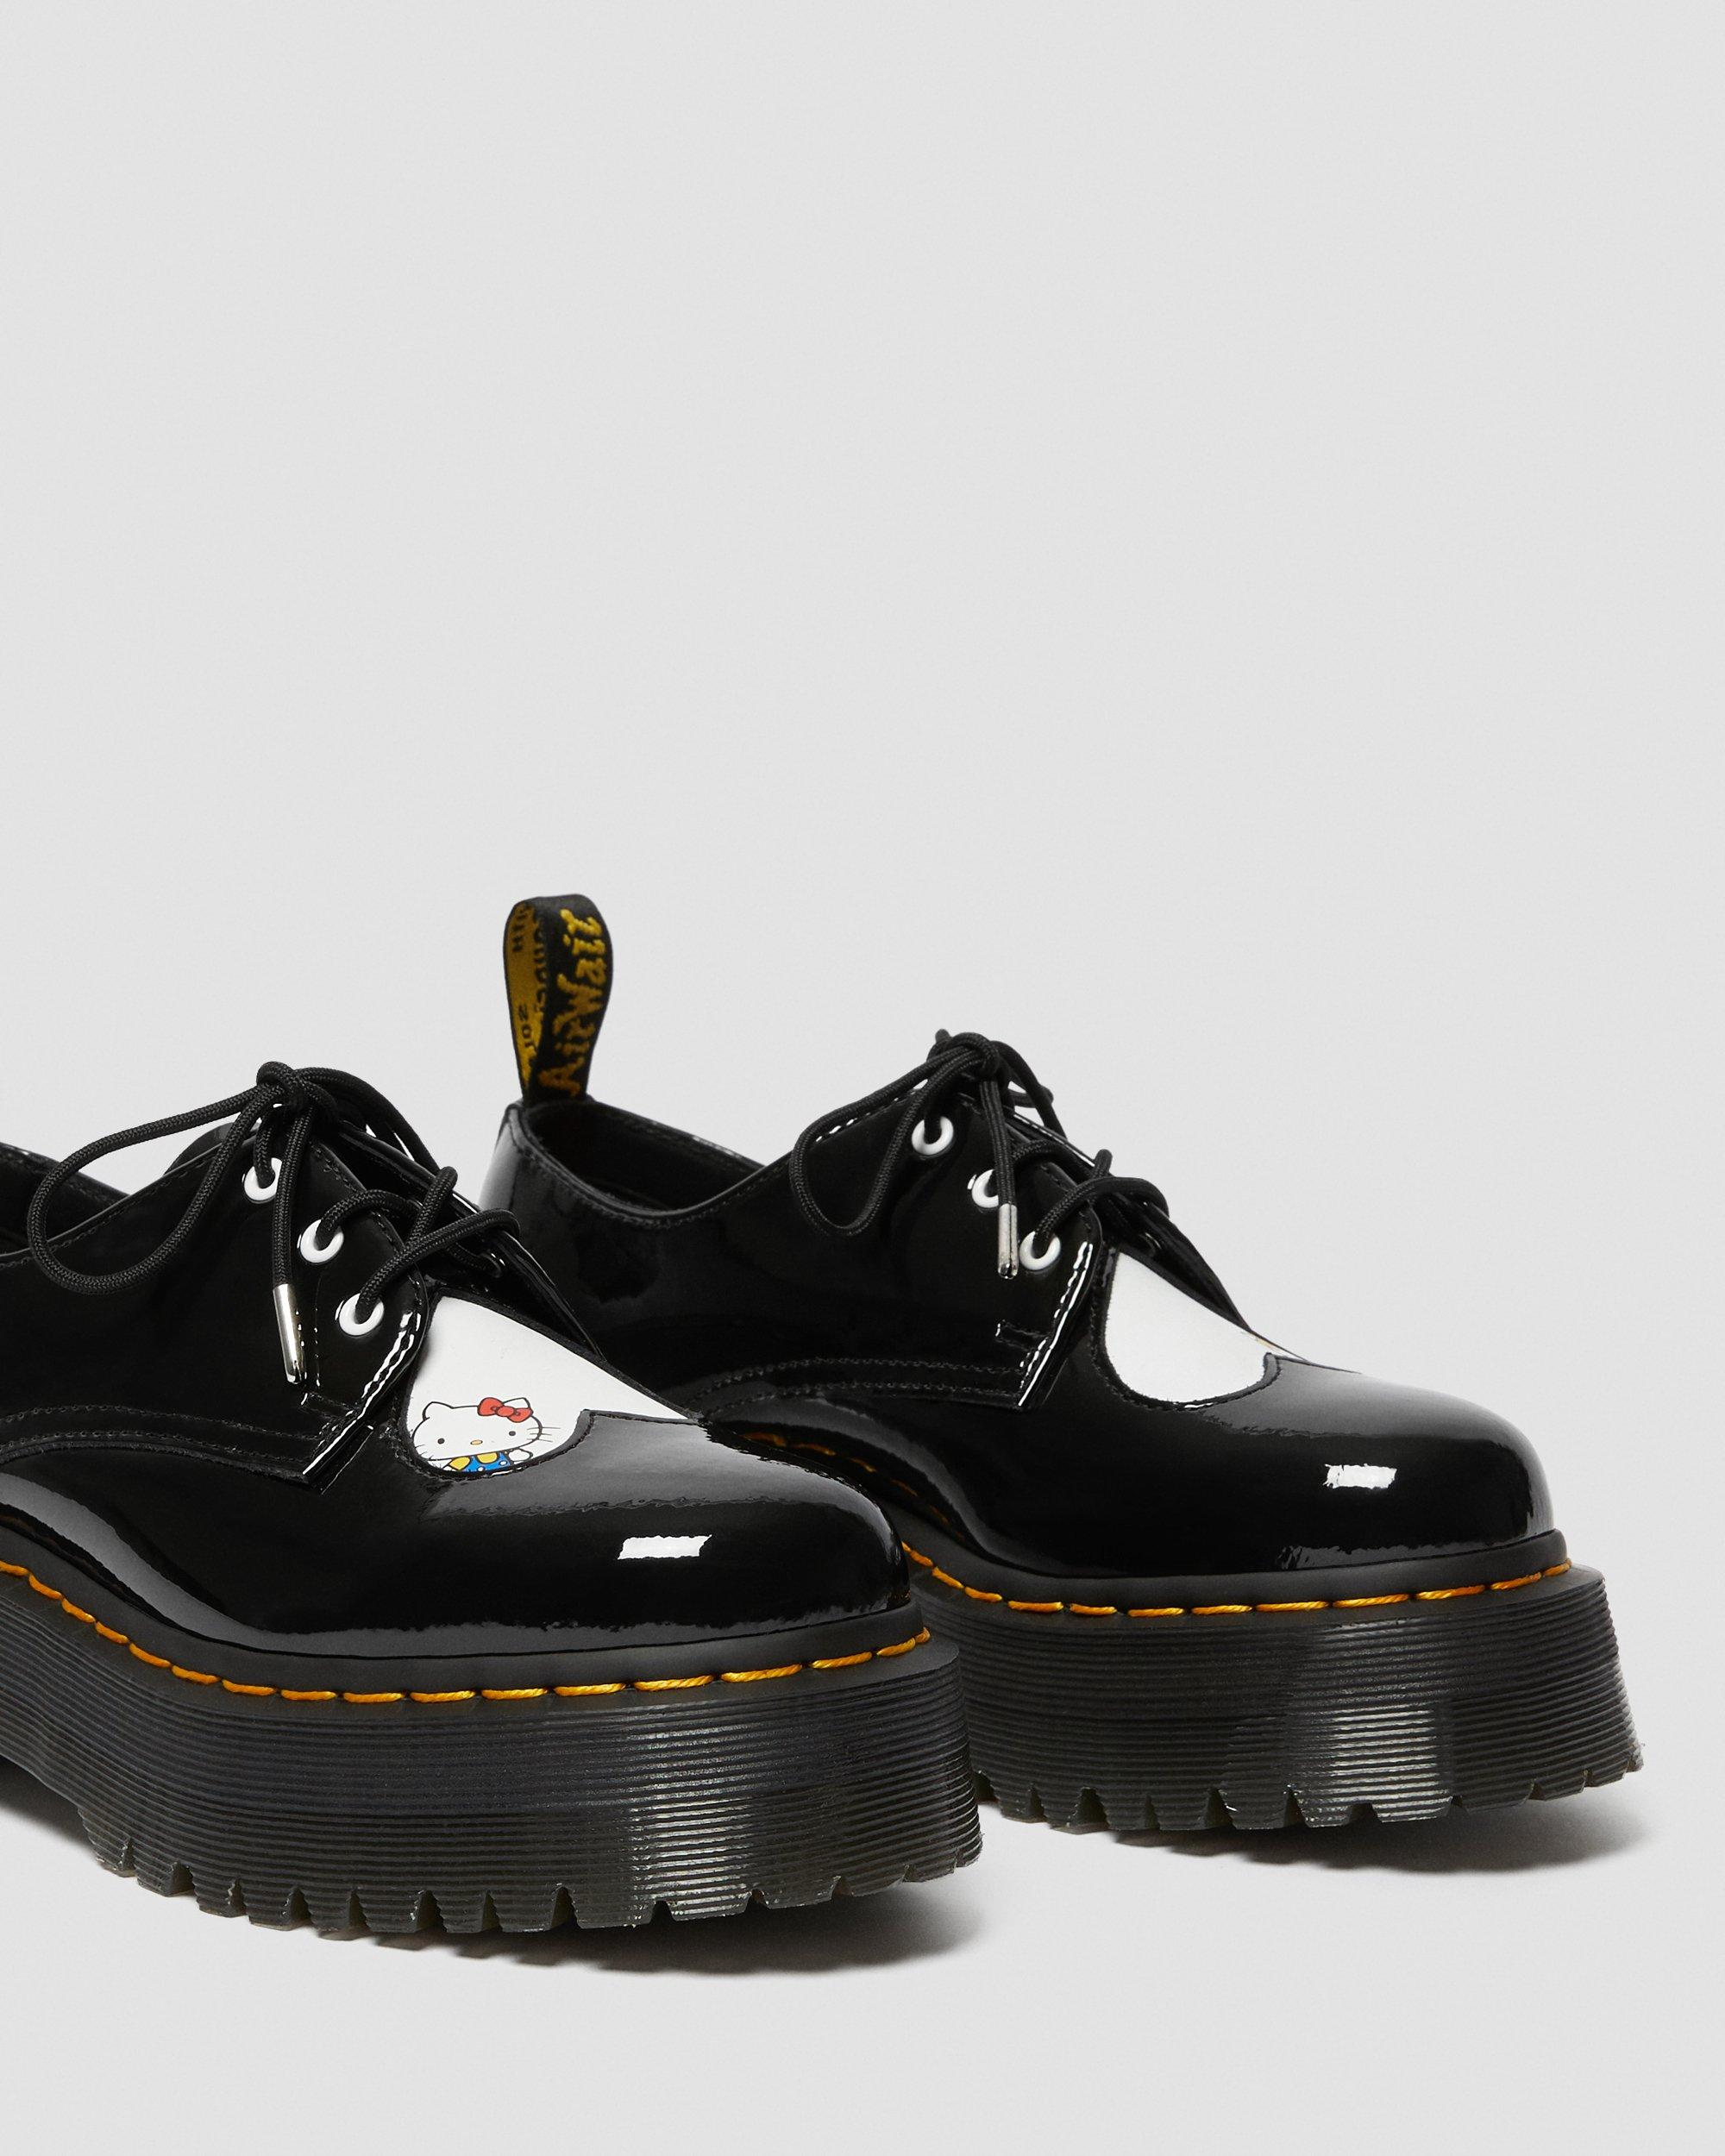 dr martens hello kitty